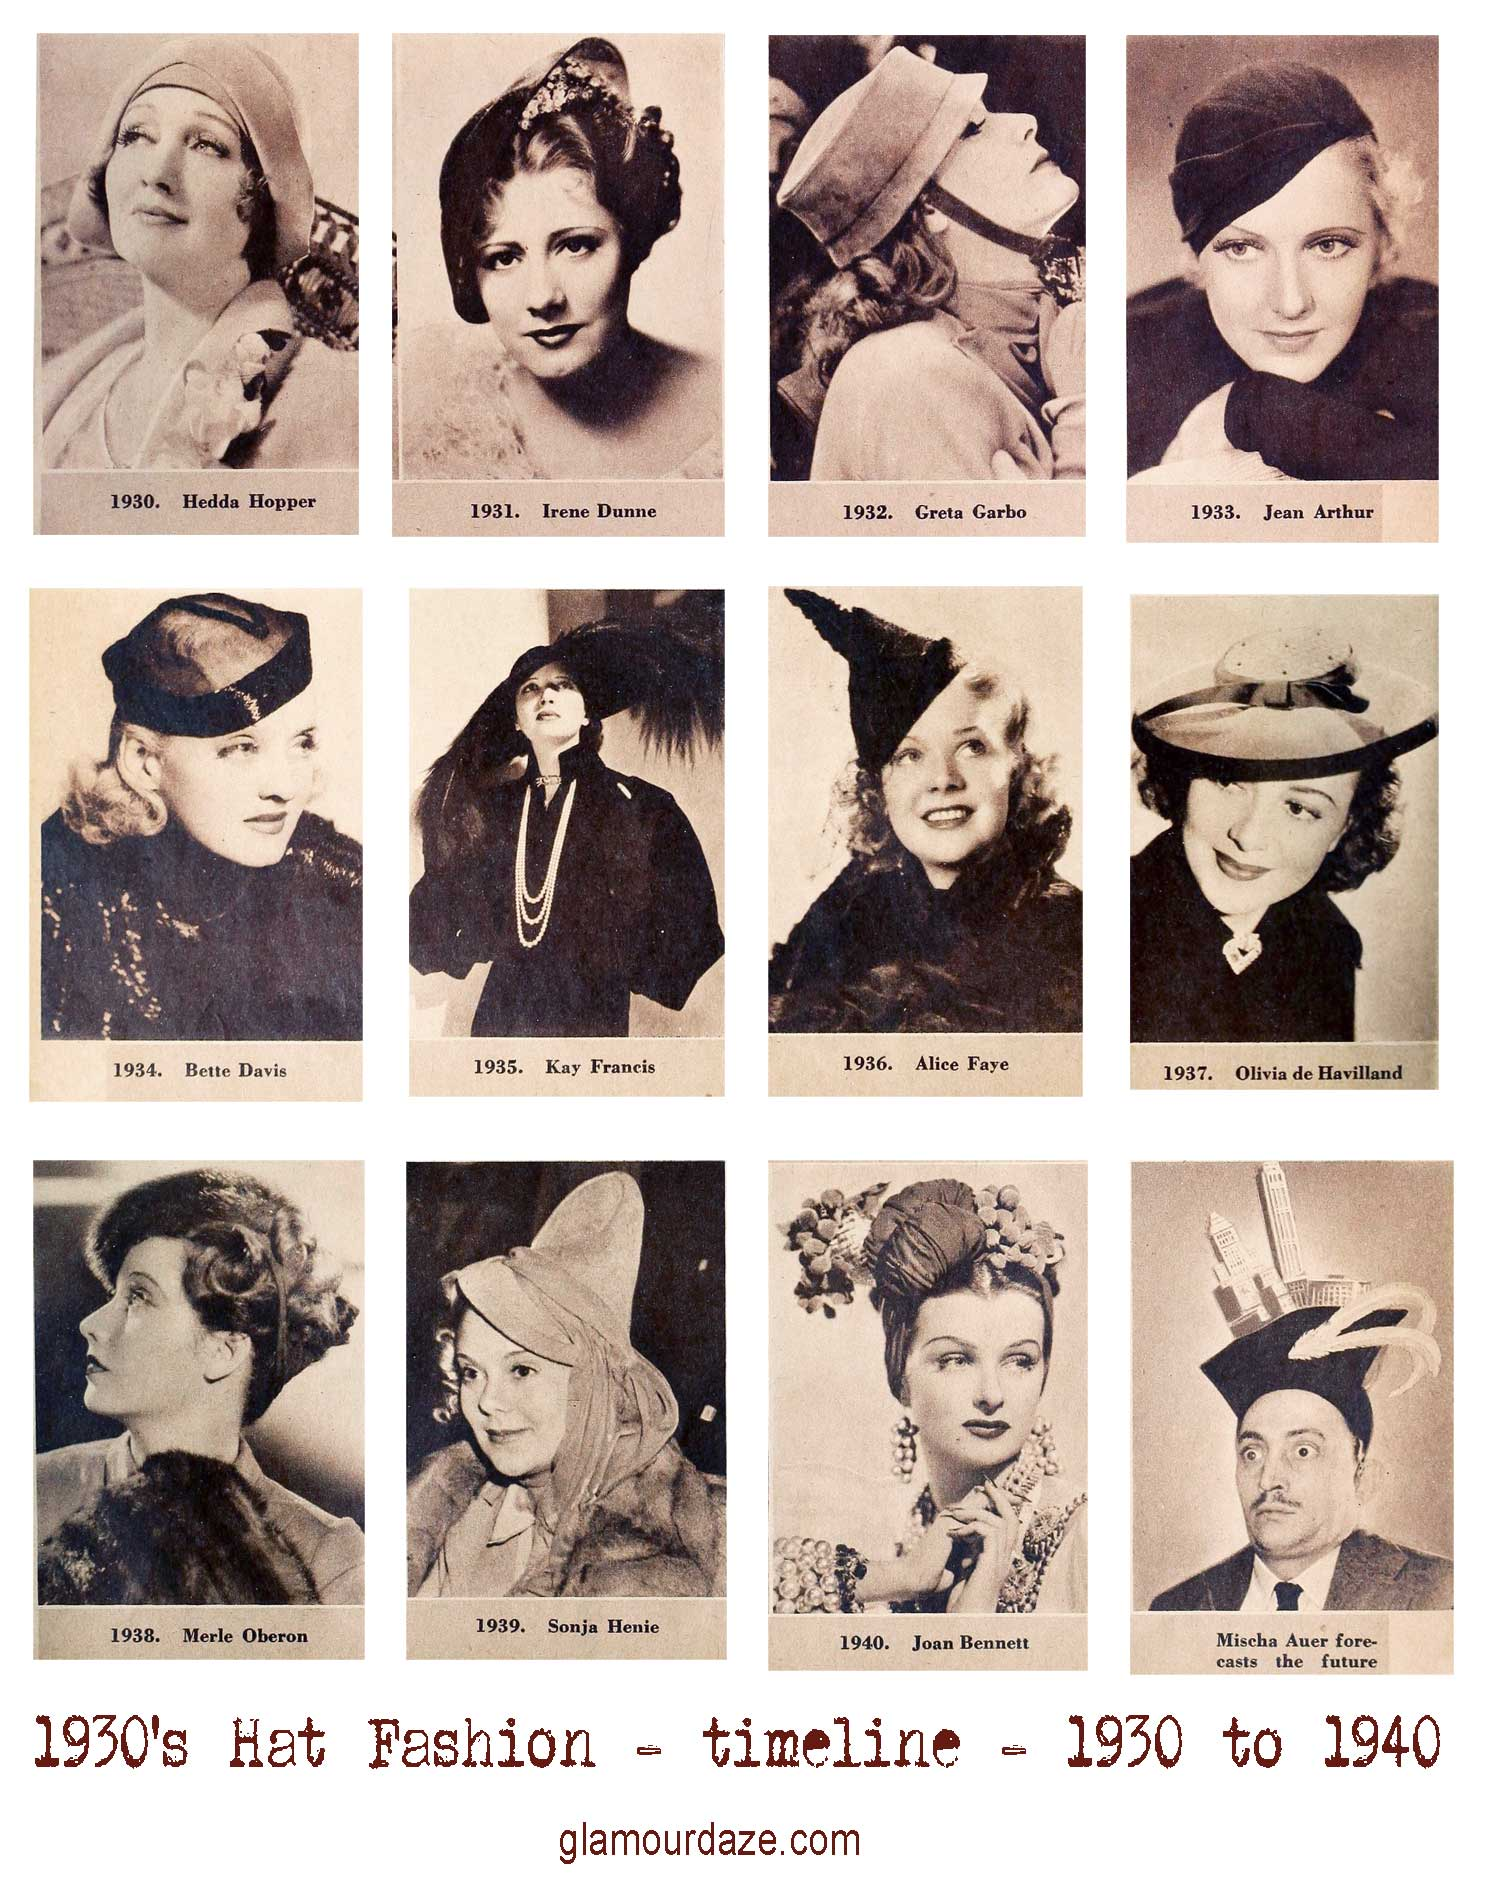 1930s-hat-fashion-timeline-1930-to-1940